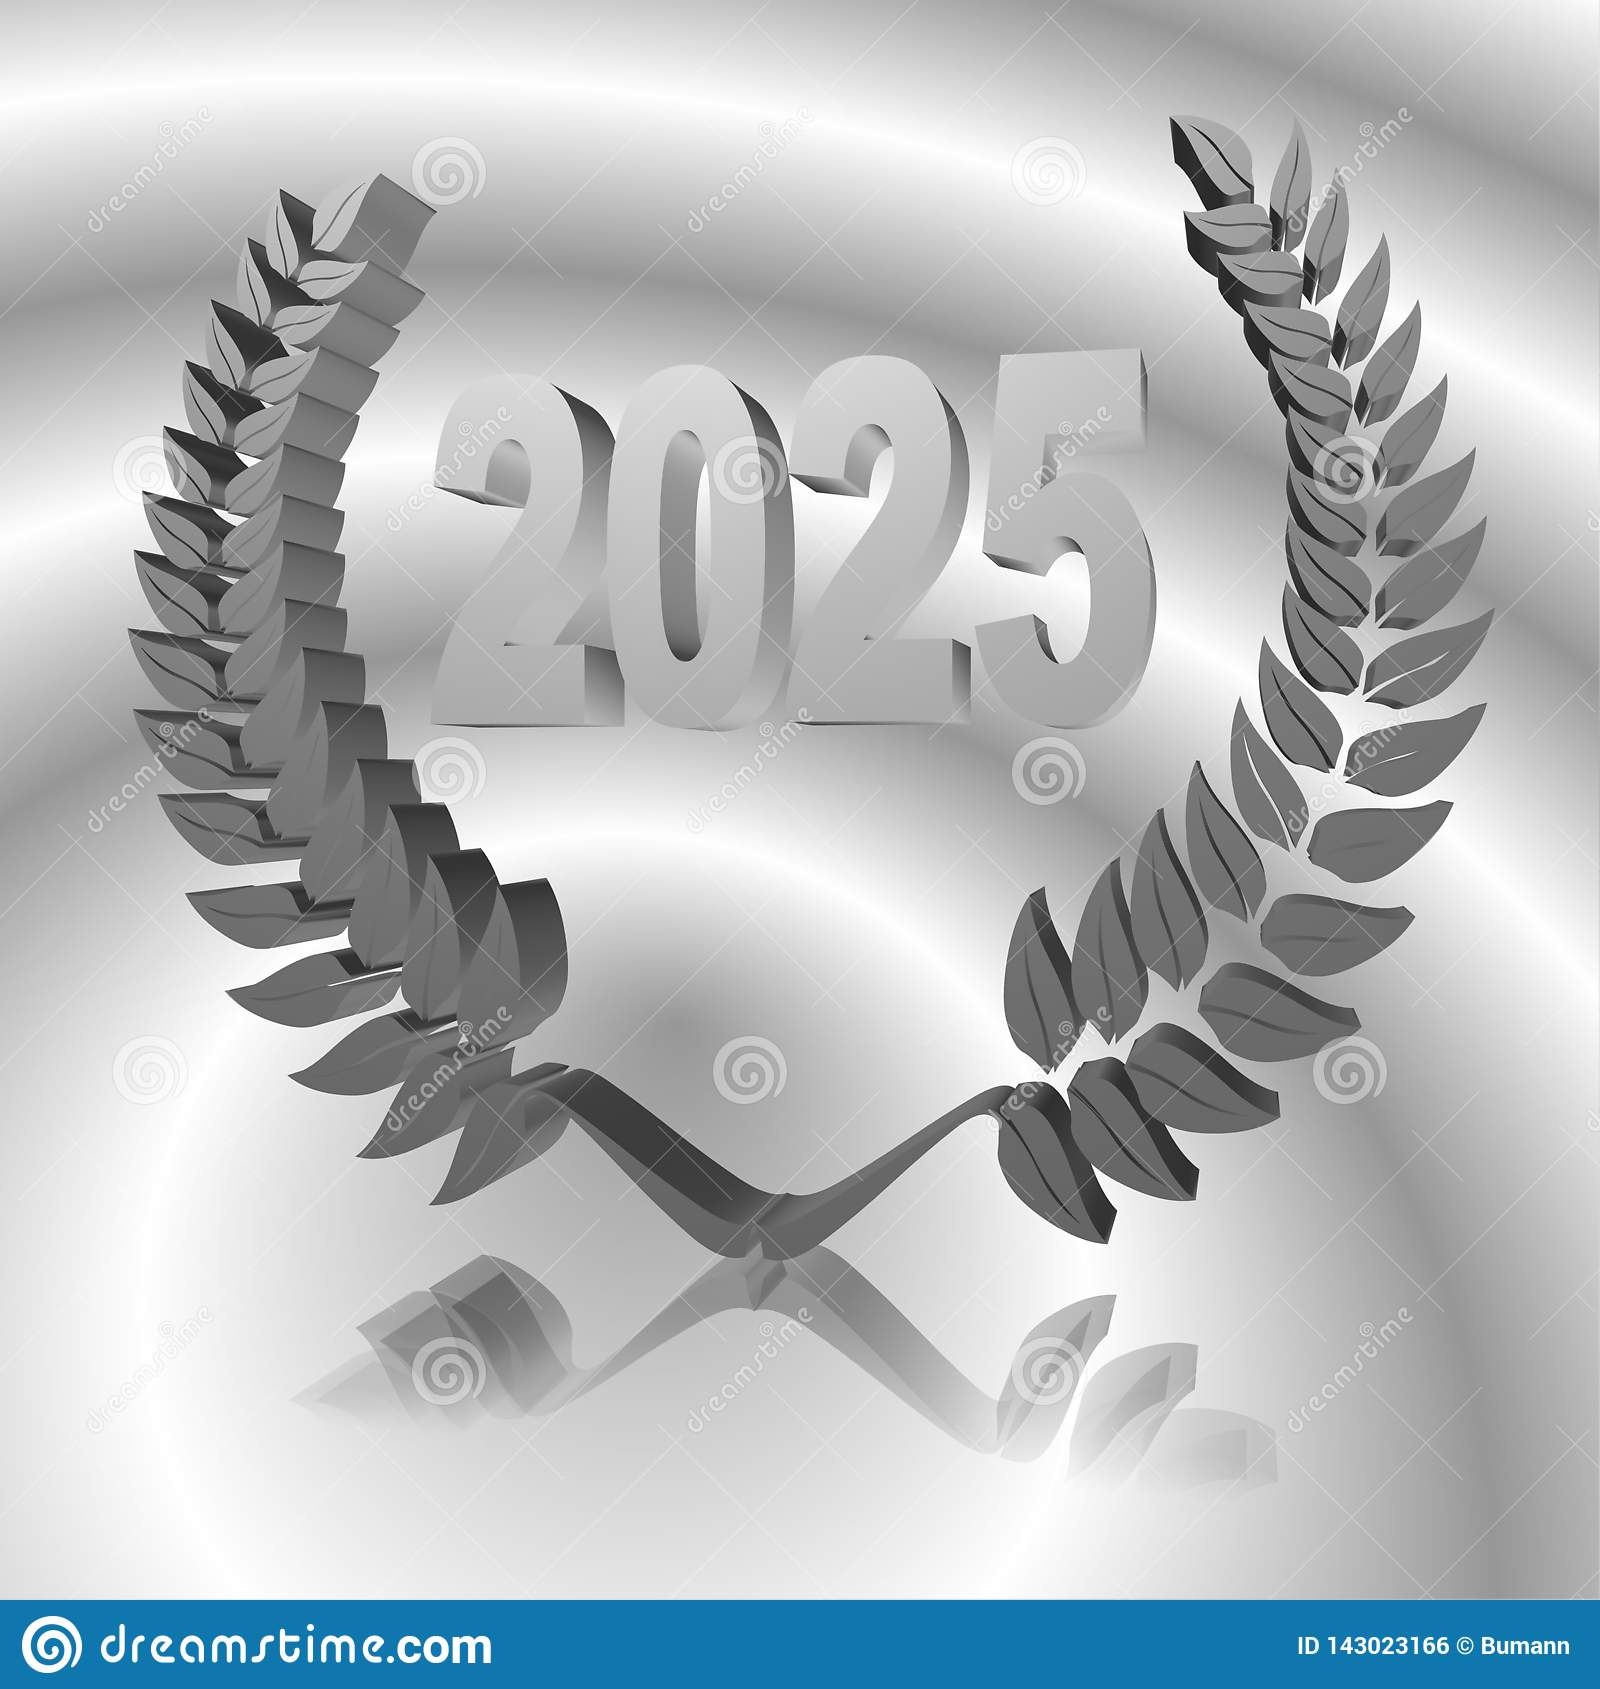 3D Illustration: A laurel wreath with the number 2025, symbol image for a jubilee, anniversaries, successes